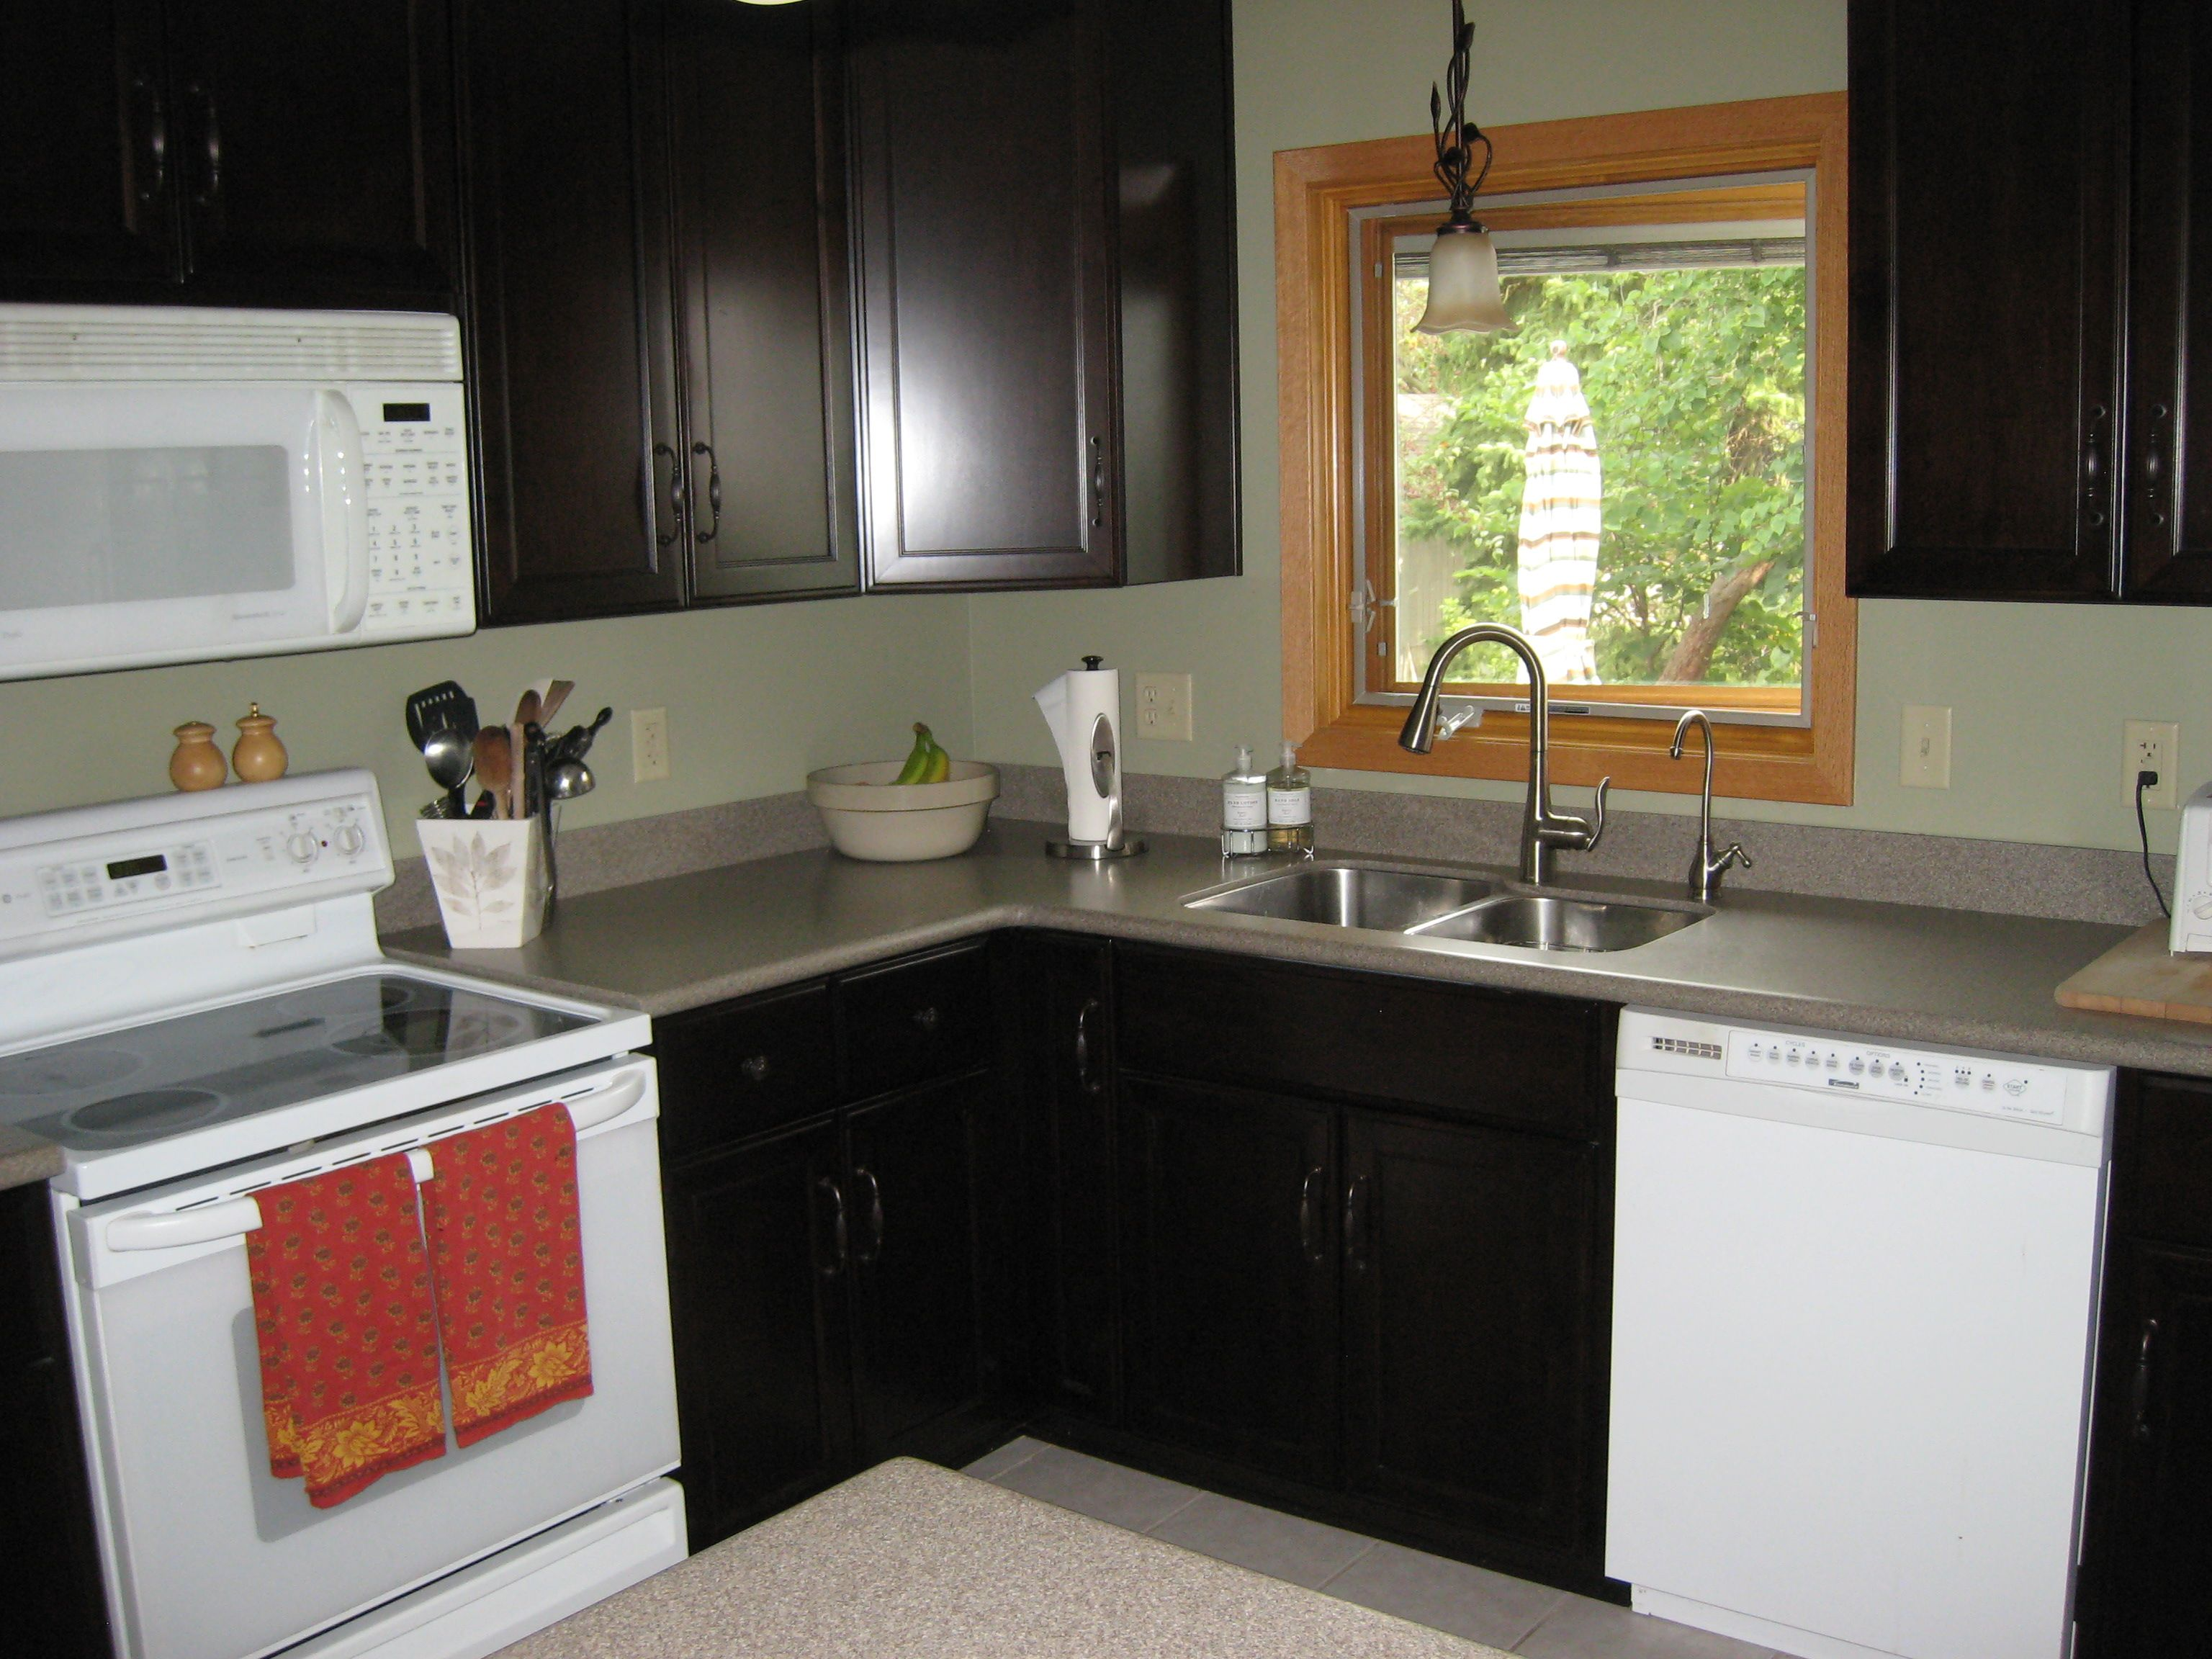 Small l shaped kitchen like yours with dark cabinets and I shaped kitchen